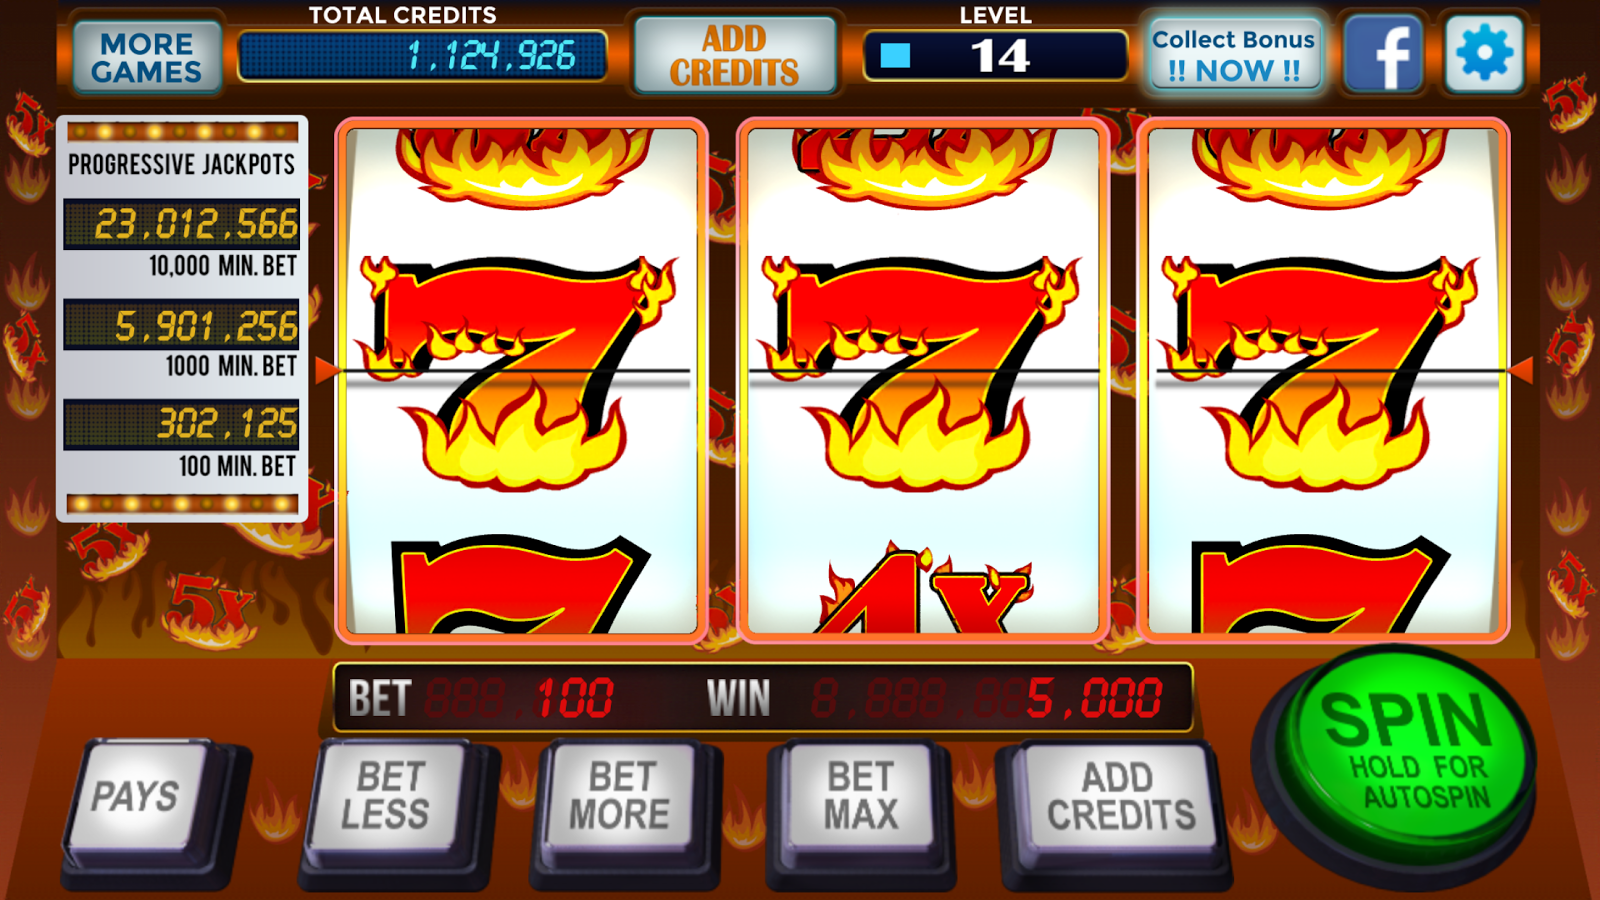 Kummeli Slot Machine - Play Free Play'n GO Slot Games Online